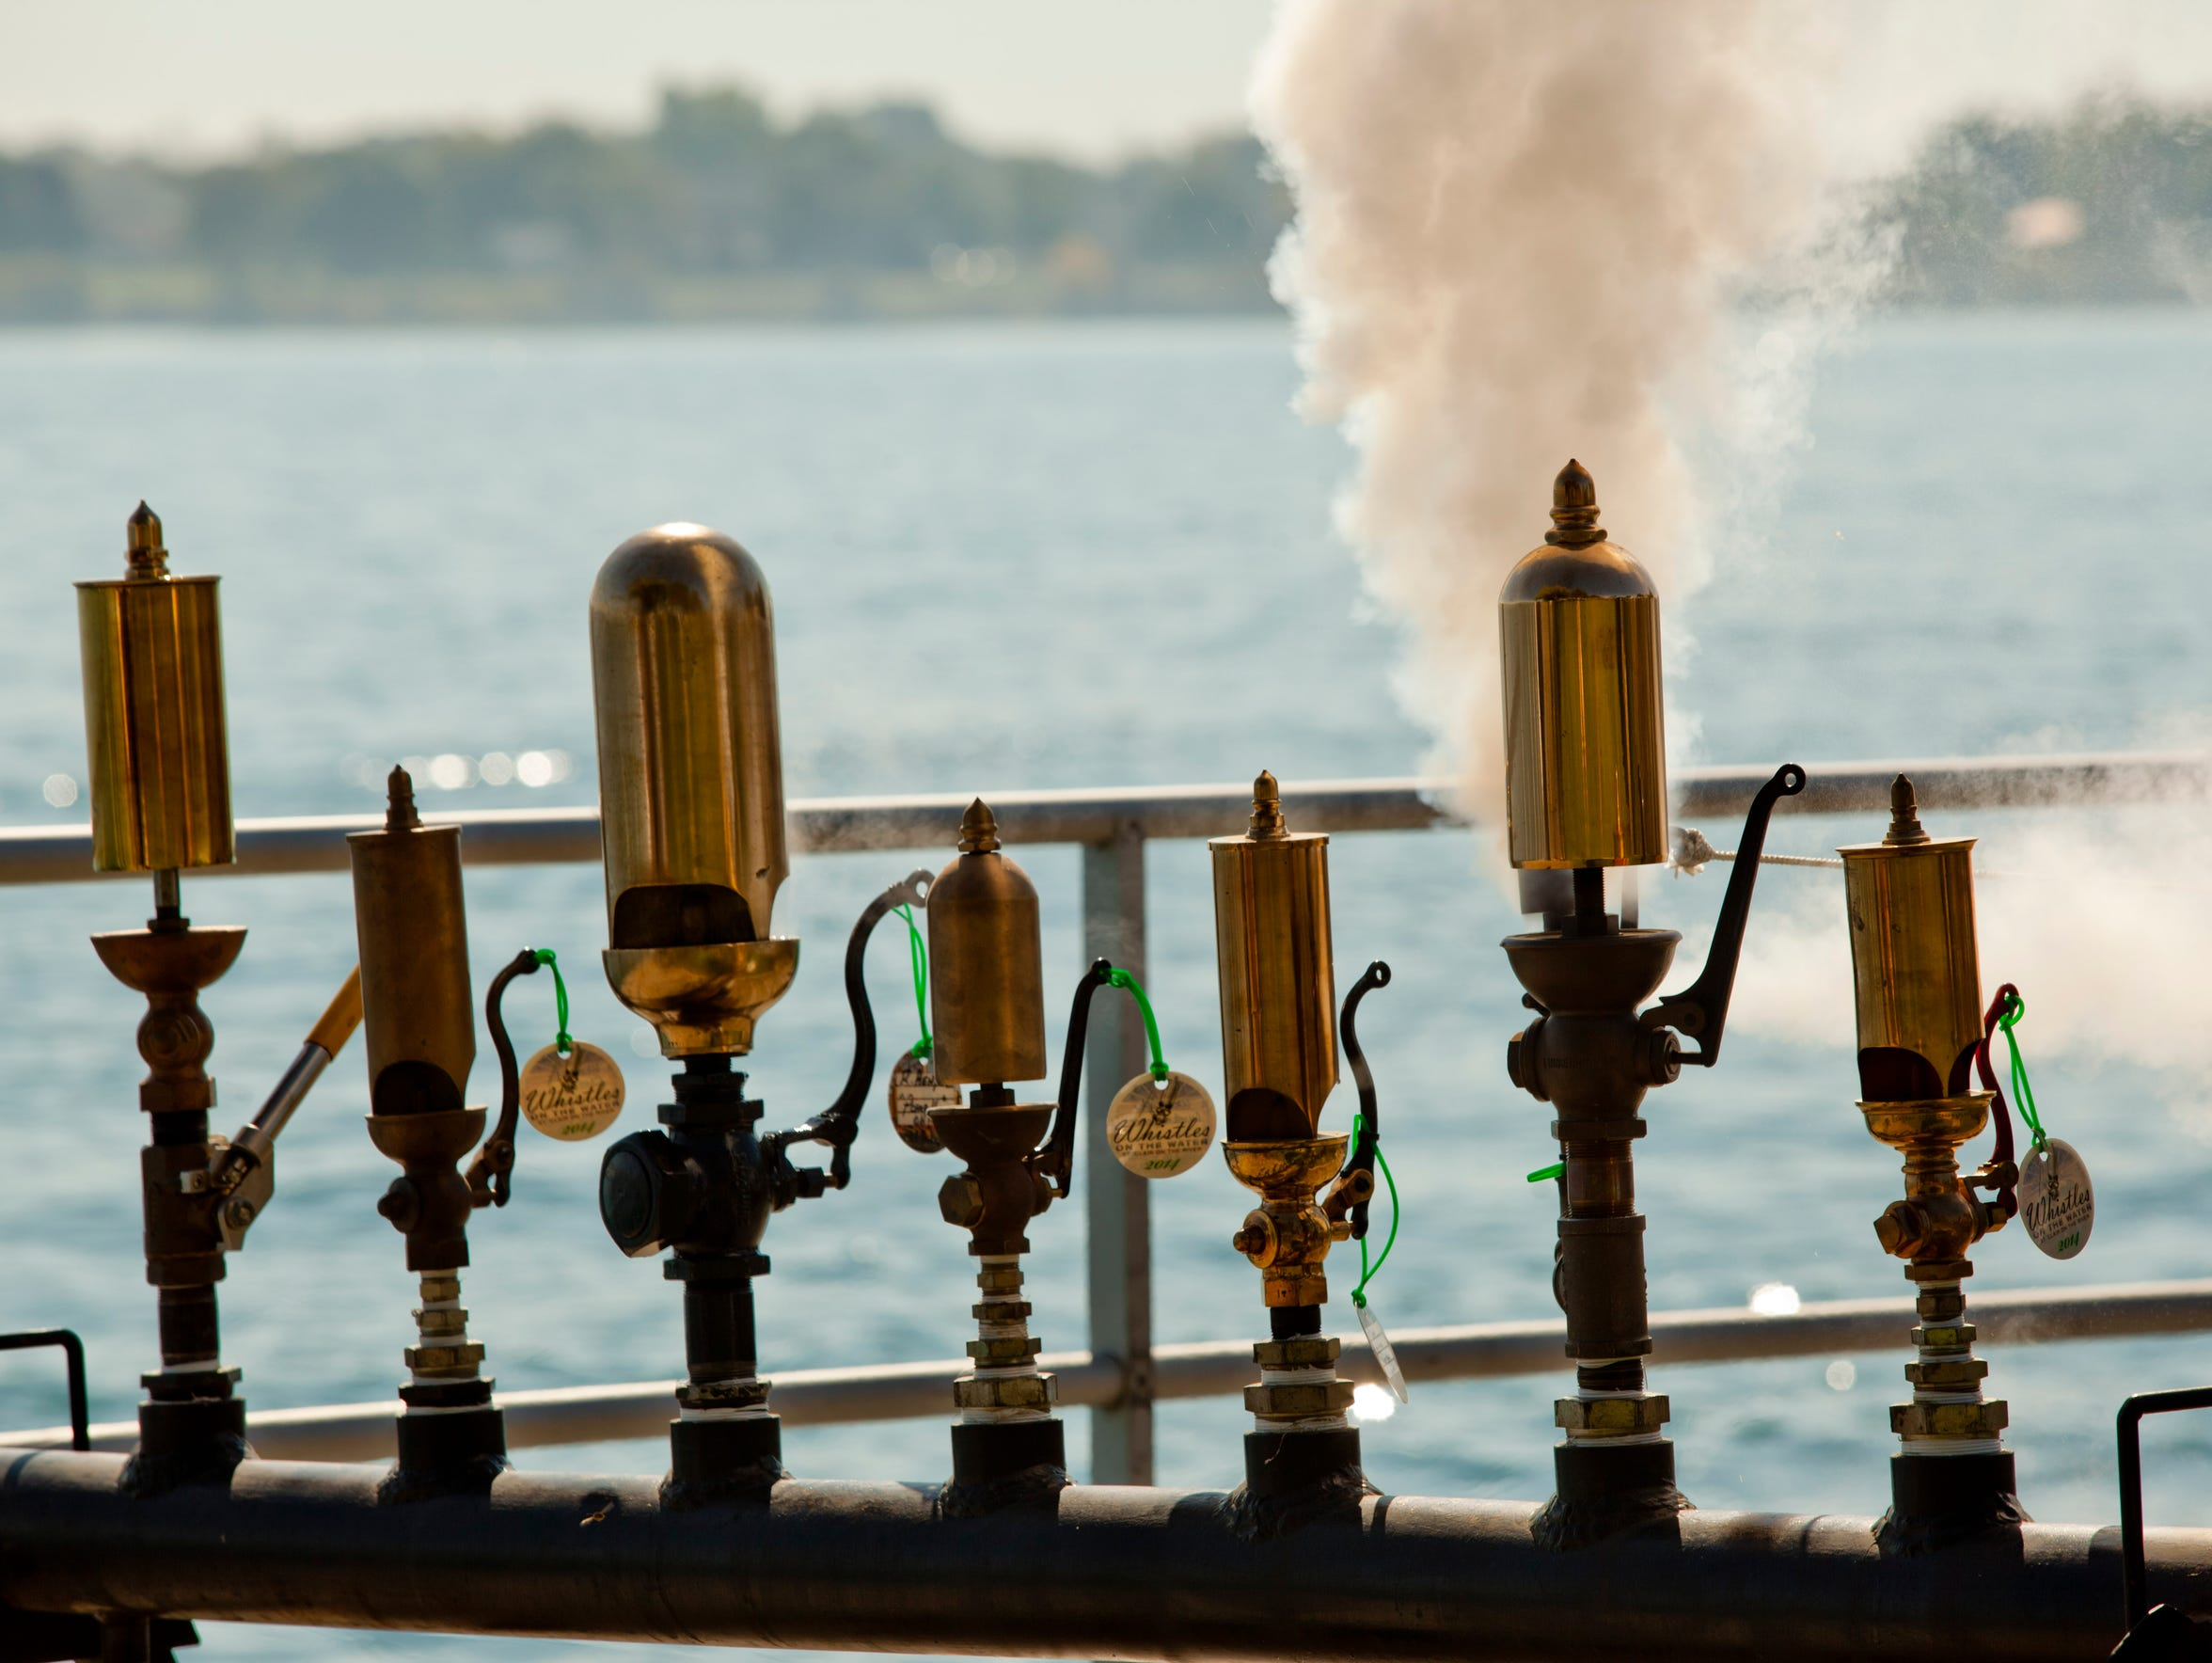 A small steam whistle is blown during Whistles on the